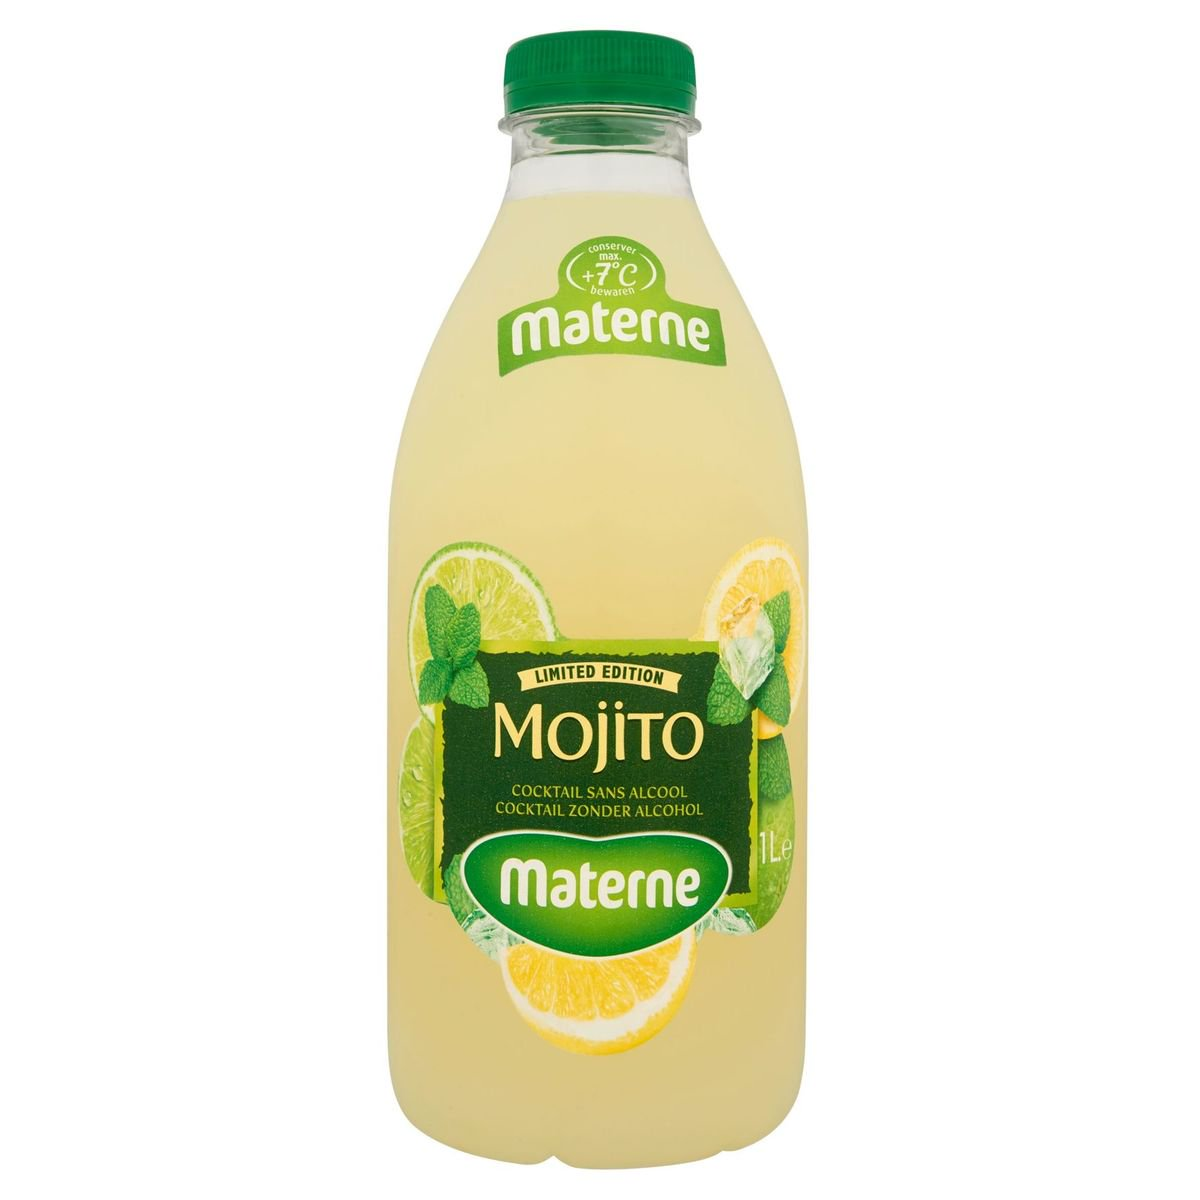 Materne Mojito Cocktail sans Alcool Limited Edition 1 L